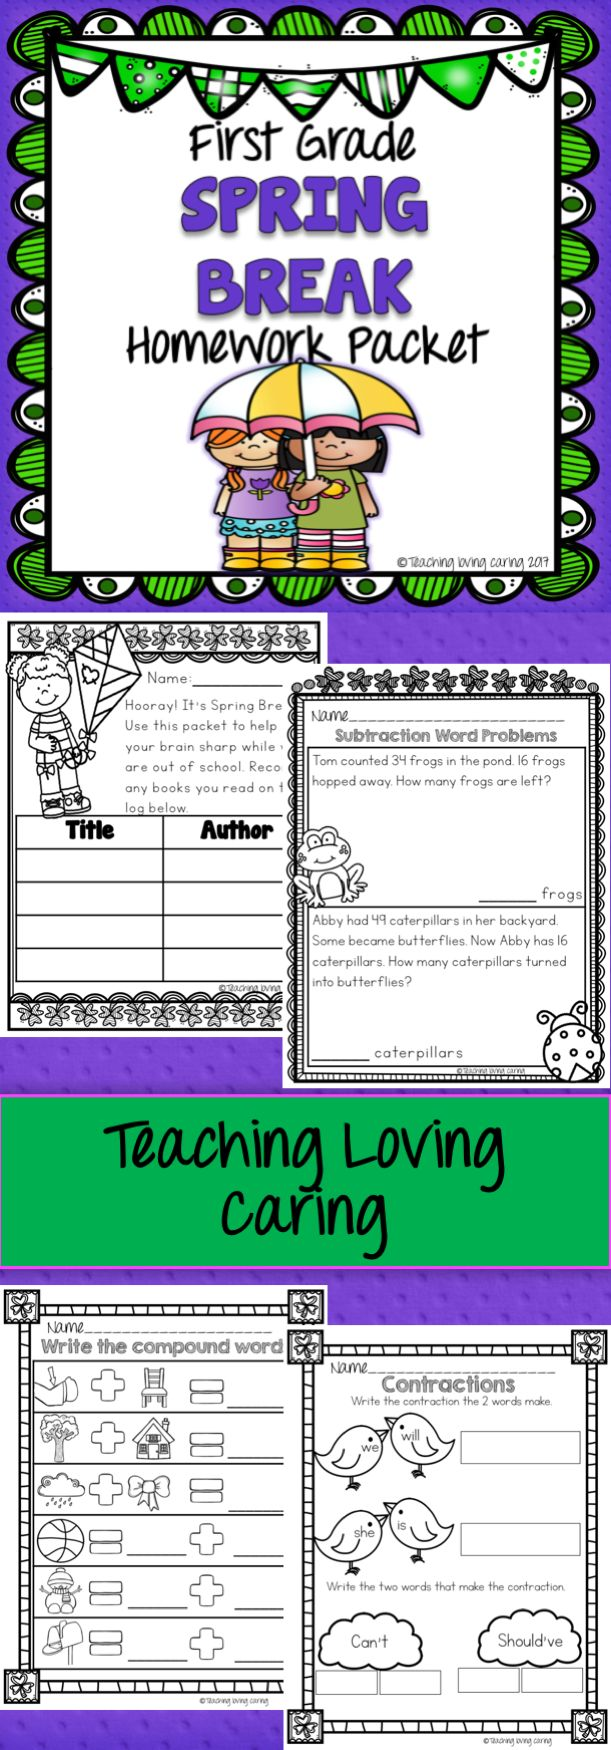 Make sure your first graders are growing their brains over Spring Break with this fun home learning packet!  Topics Included: Counting to 120 Place Value 100 More/Less Addition and Word Problems Subtraction and Word Problems Geometry Synonyms and Antonyms Contractions Compound Words Bossy R Spelling  Sentence Writing  No Prep!   Includes an optional cover page with reading log!